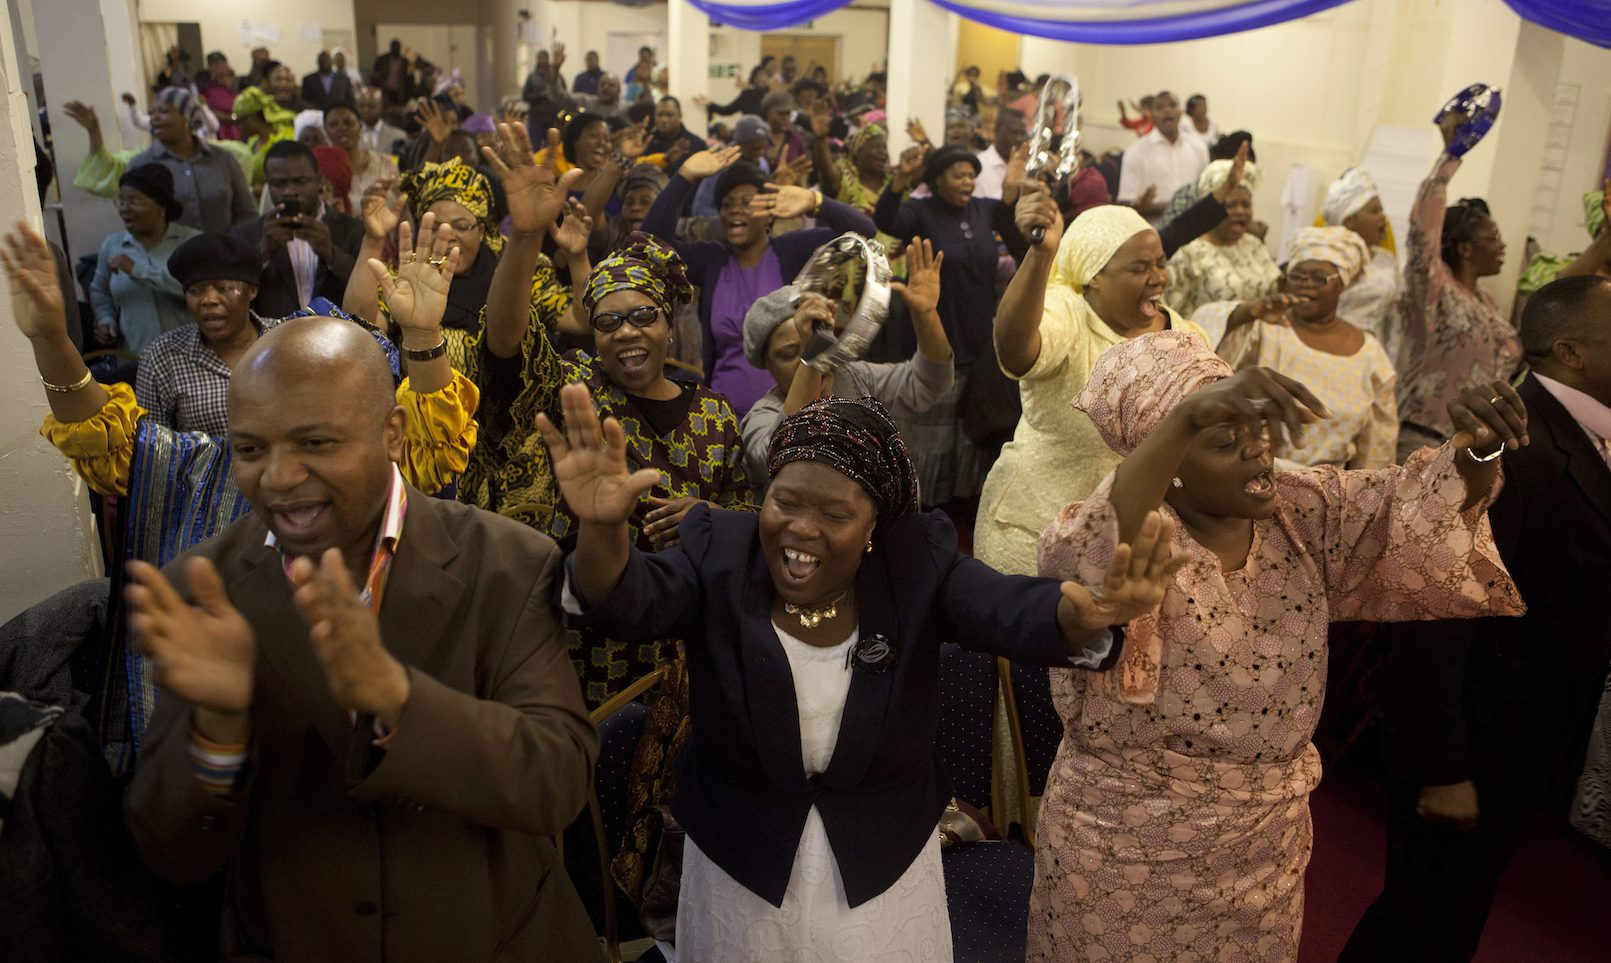 The Mountain of Fire and Miracles Ministries Church, a Pentecostal church started in Nigeria has expanded across the UK. This church in Hackney Wick, operates out of an old factory building.